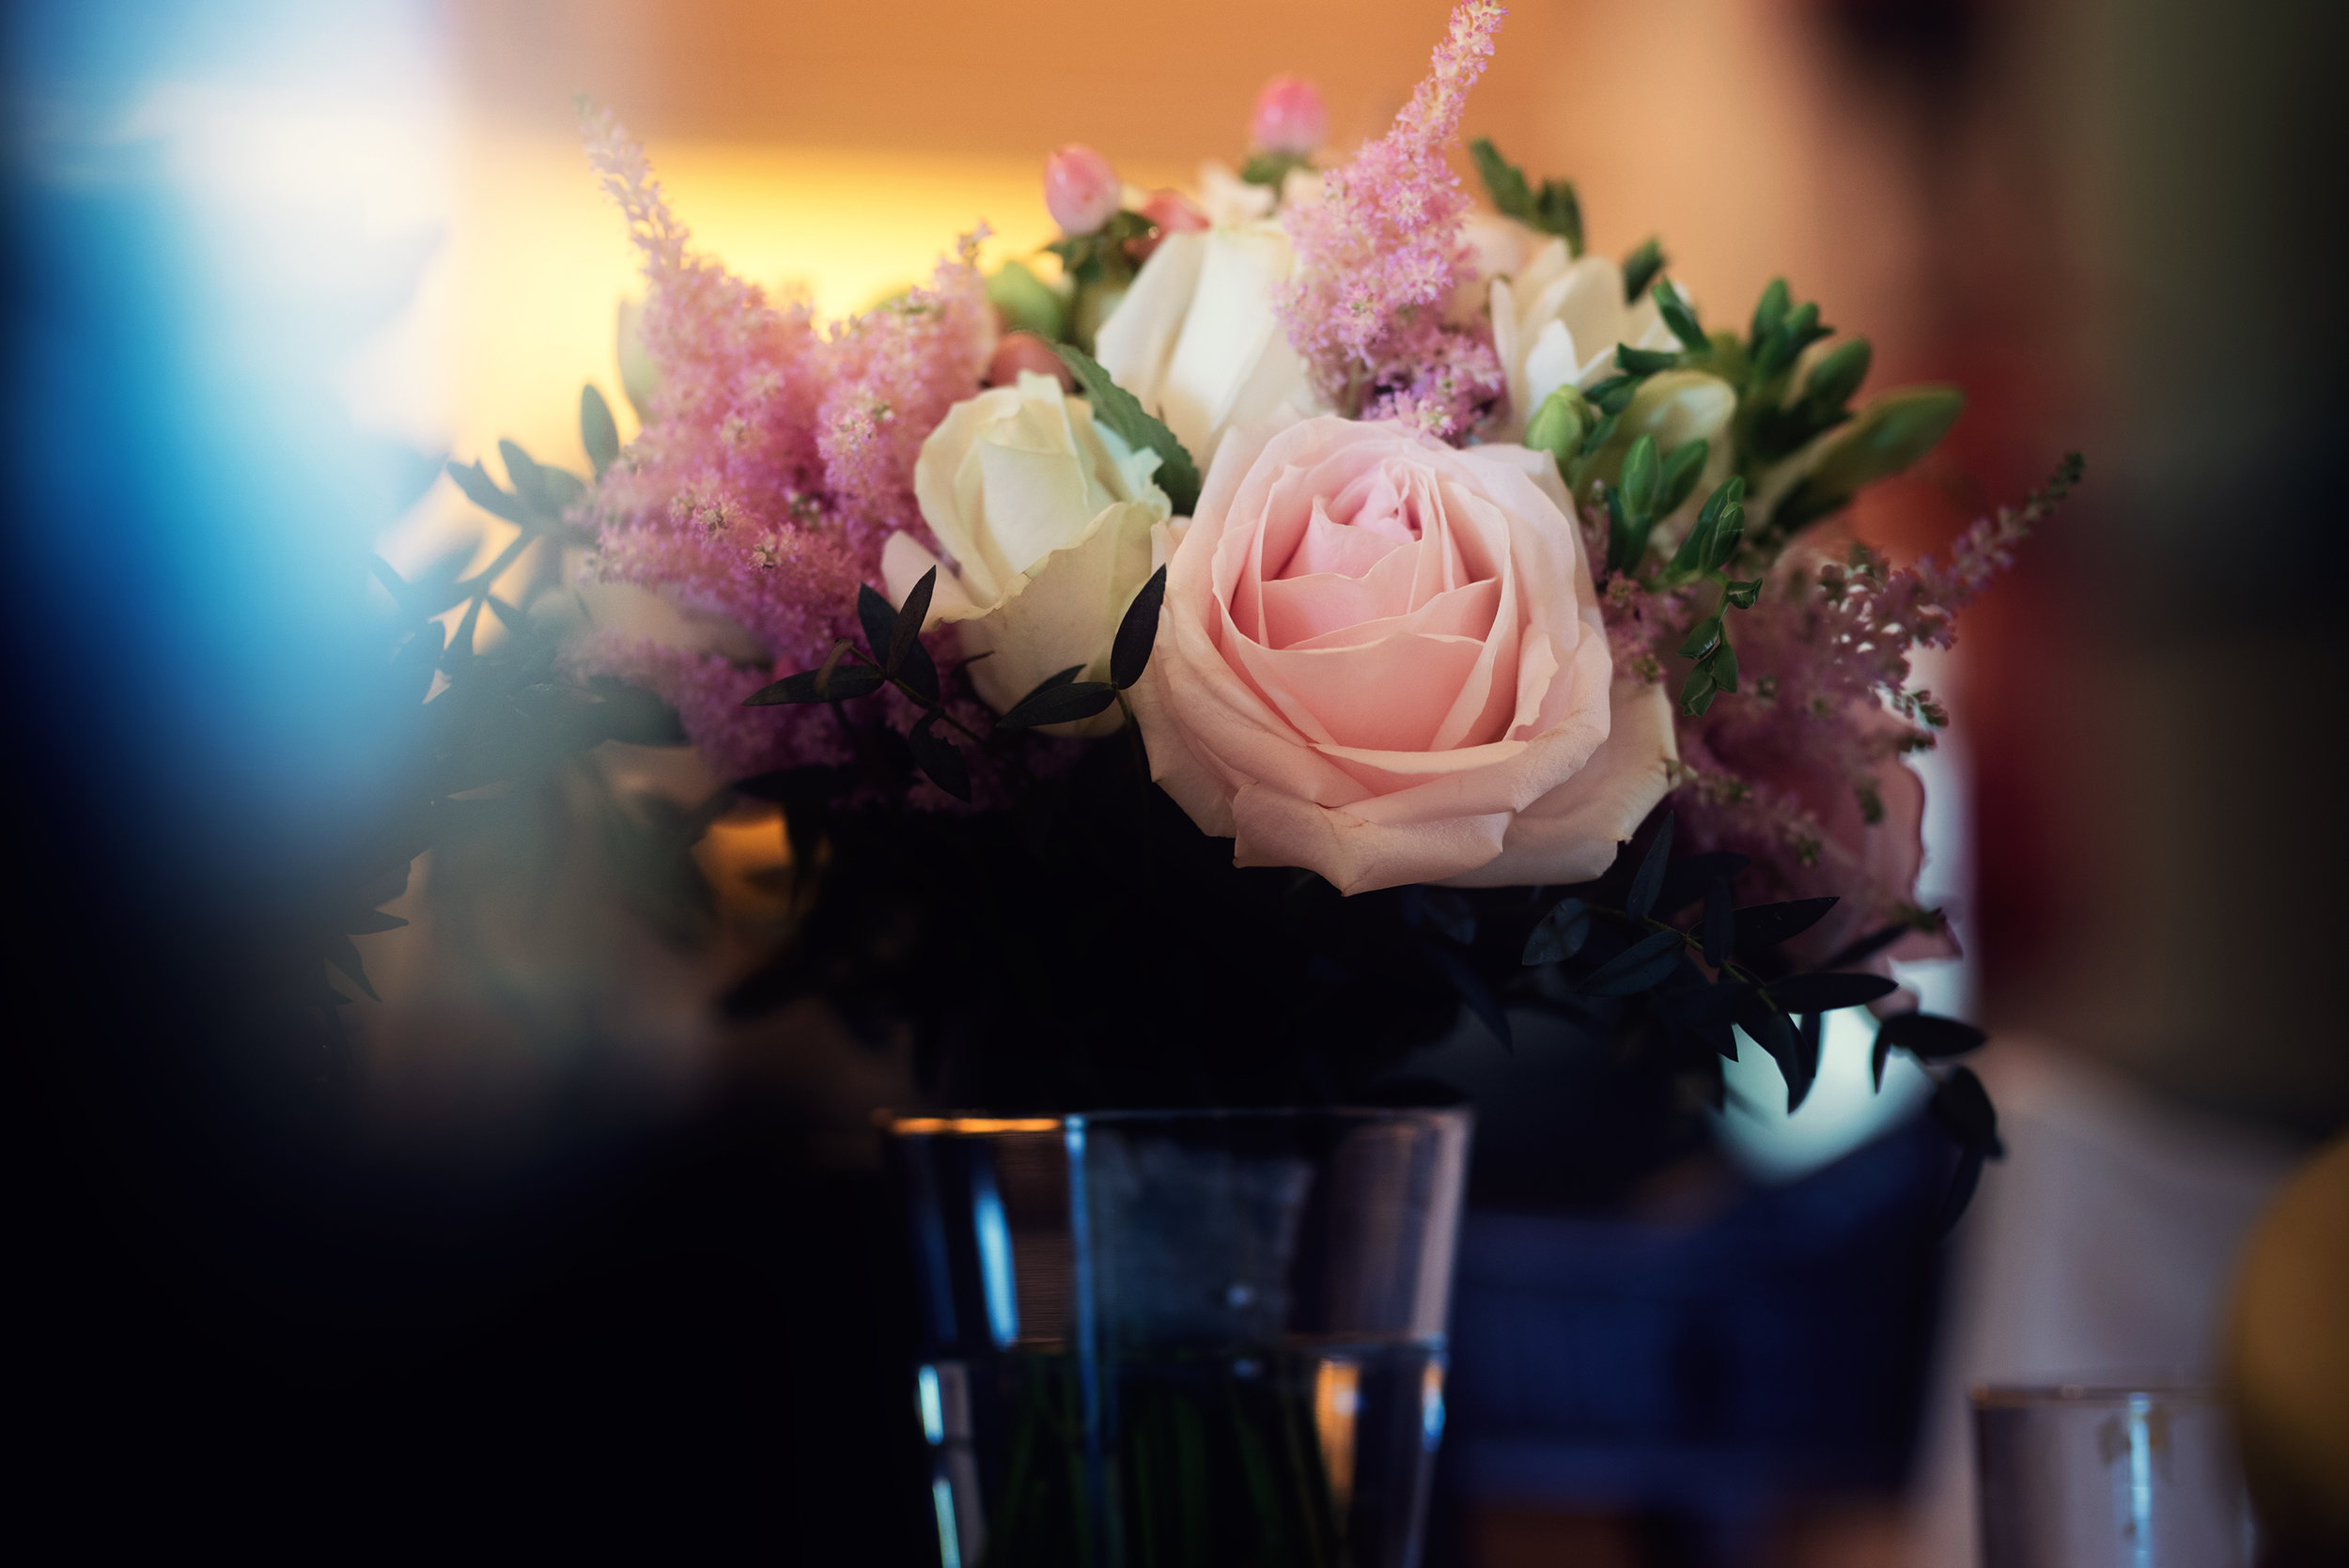 Flowers sent to the bride on the morning of the wedding from the groom